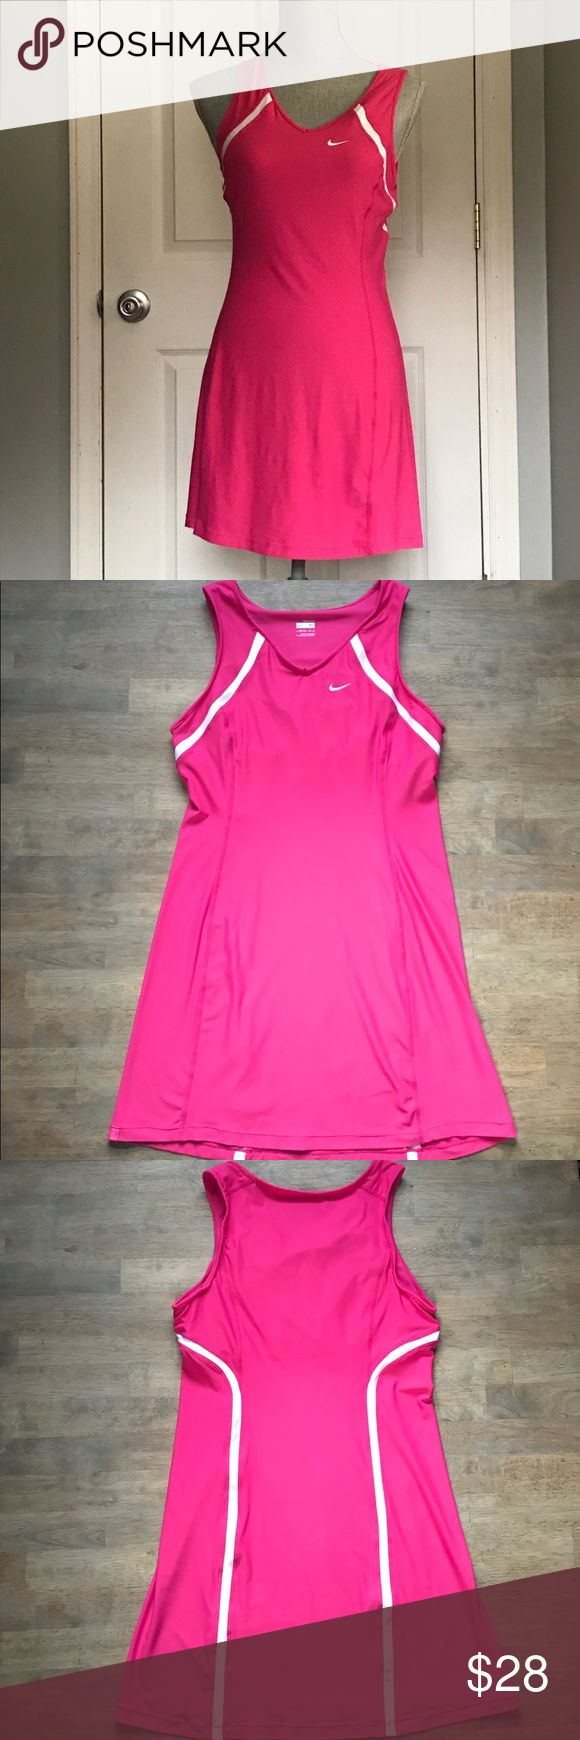 """Nike Fit Dry Tennis Dress Pink and White Nike Tennis Dress in Great Condition. No known stains or flaws. Dress has built in bra which I pictured. Size-M. Check out my closet for similar items. 🌻  Length- 31"""" Chest- 17"""" Nike Dresses Midi"""